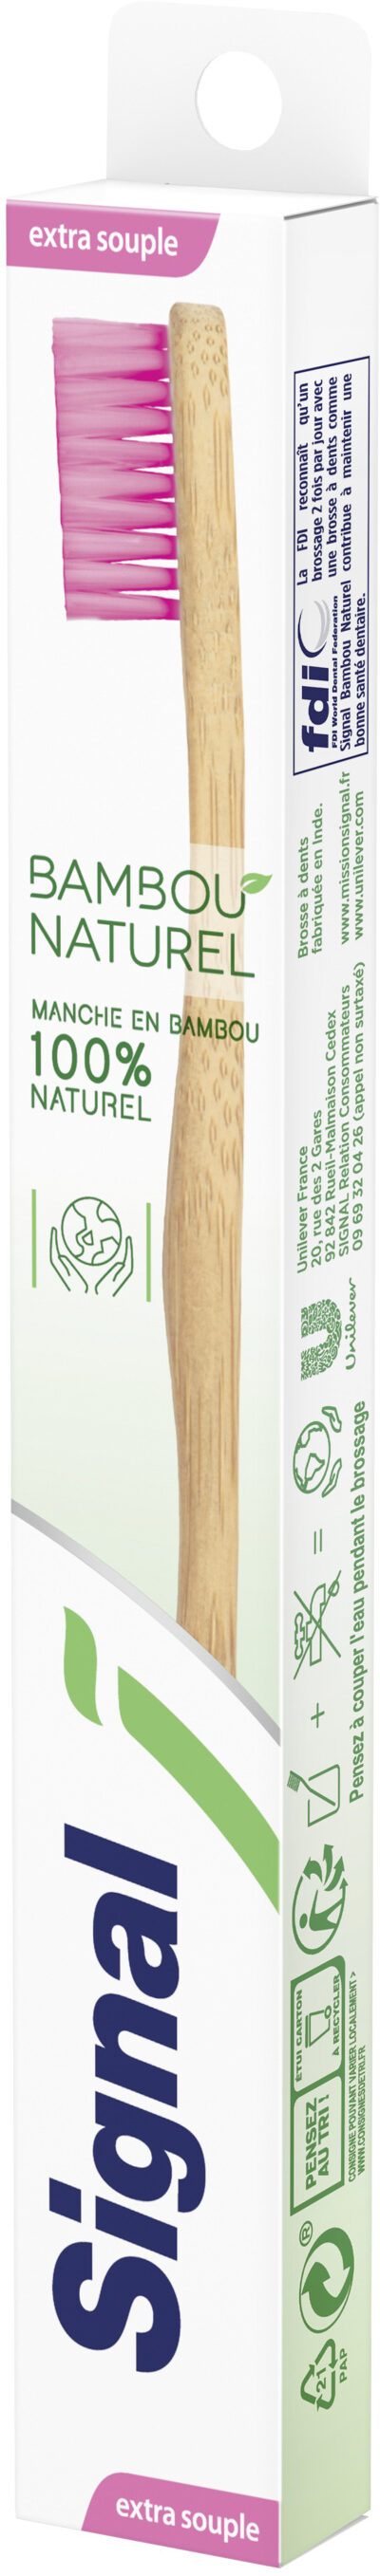 Signal Brosse à Dents Bambou Naturel Extra Souple x1 - Product - fr